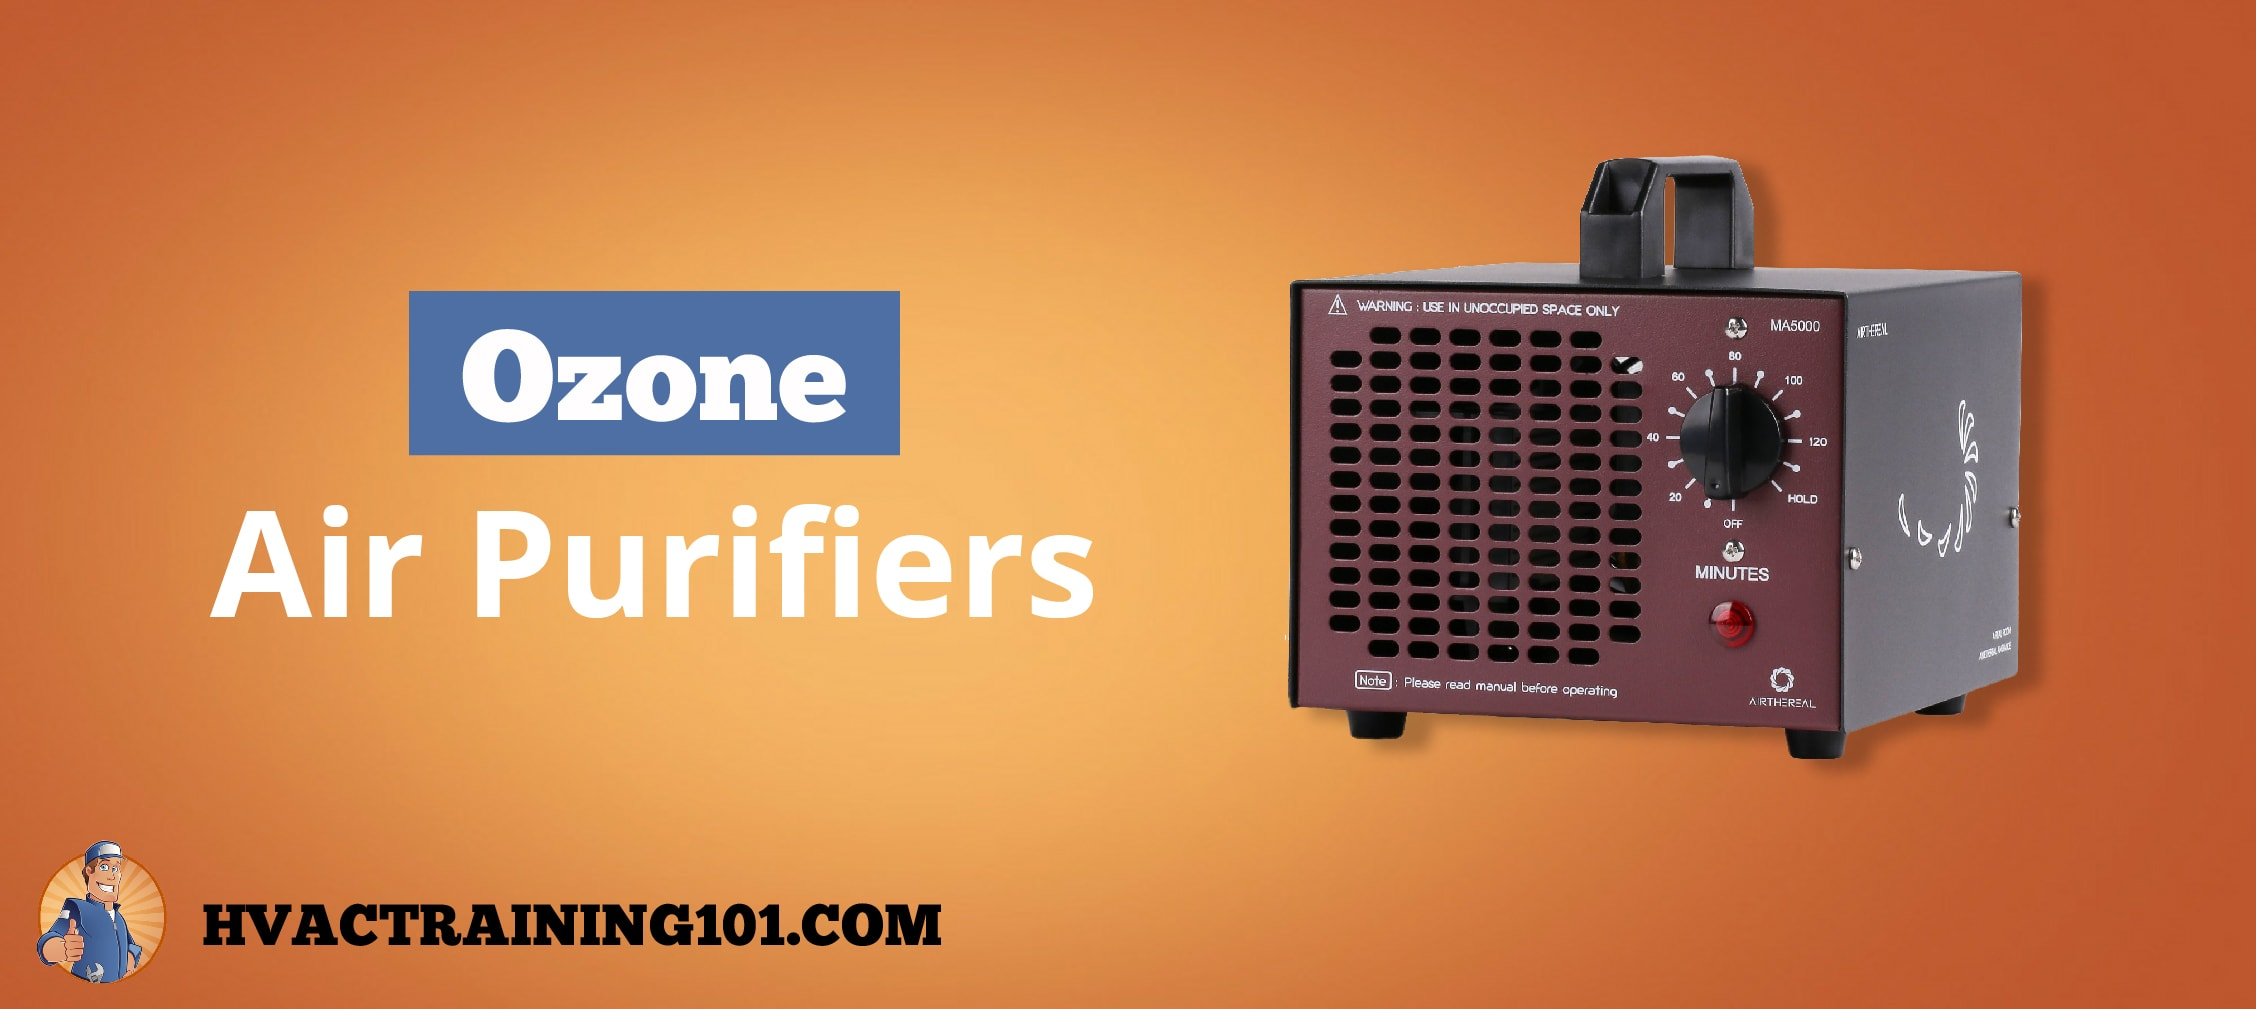 Best Ozone Air Purifiers of 2019 – Buyer's Guide